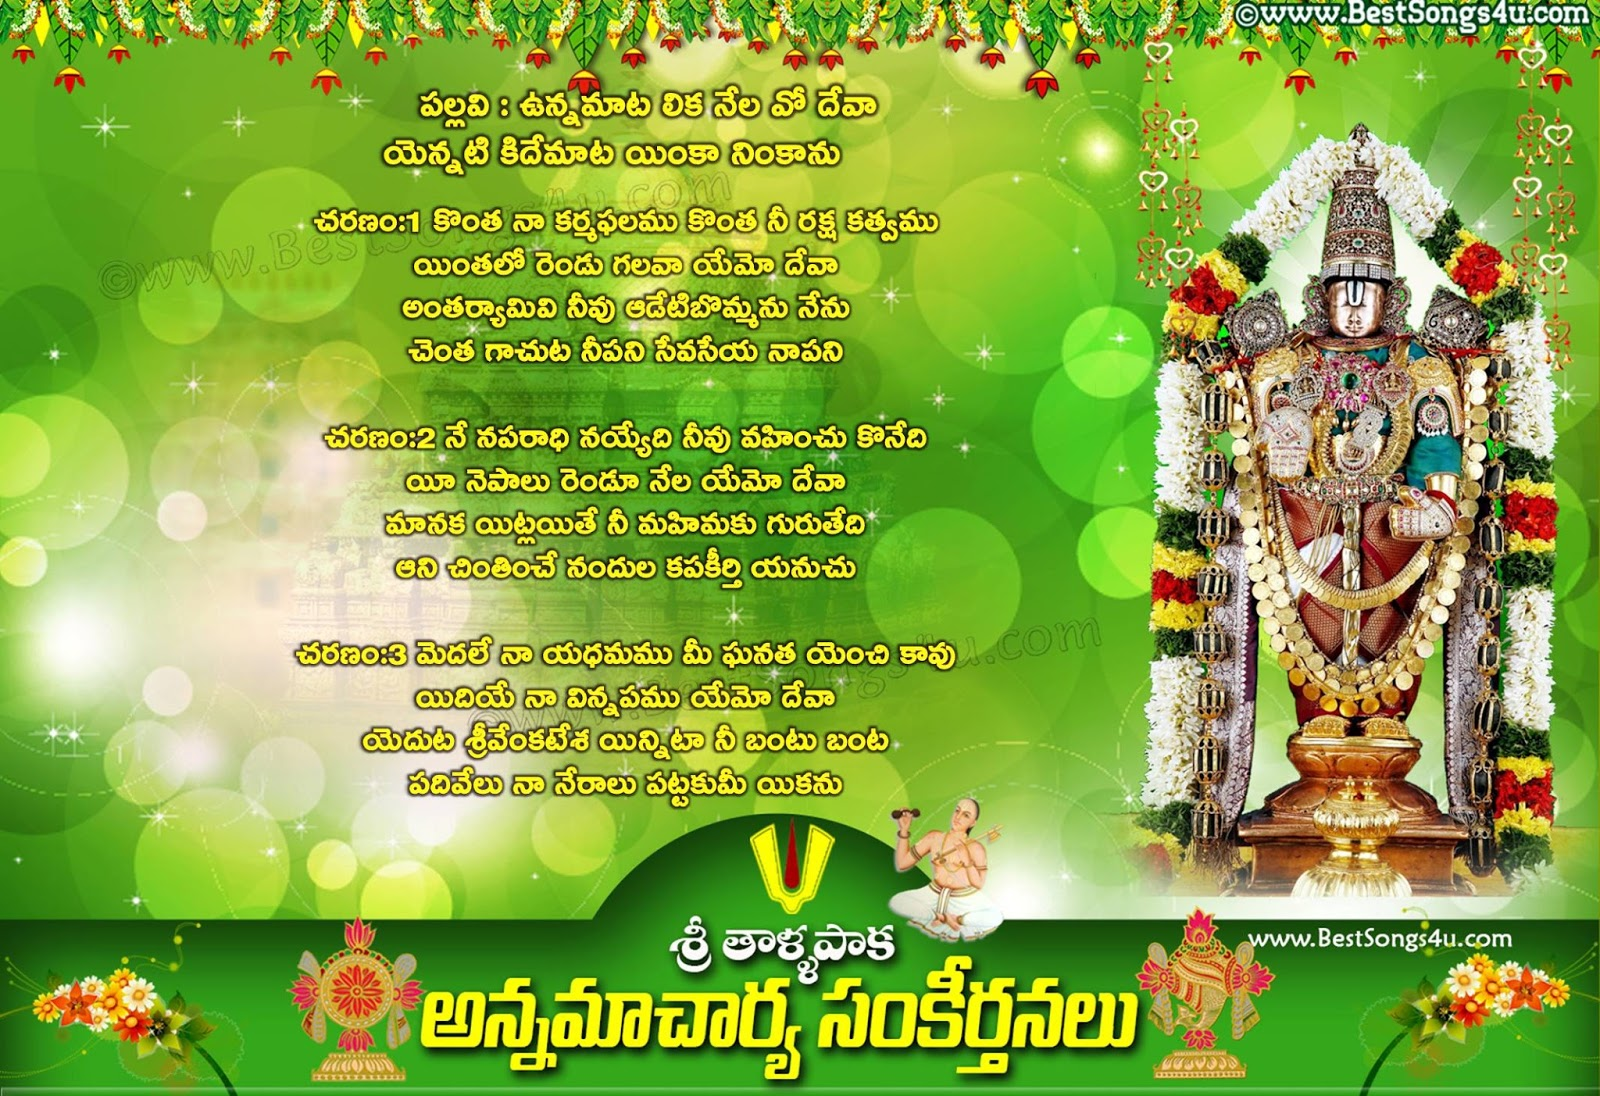 Krishna mukundha telugu devotional songs all songs download.